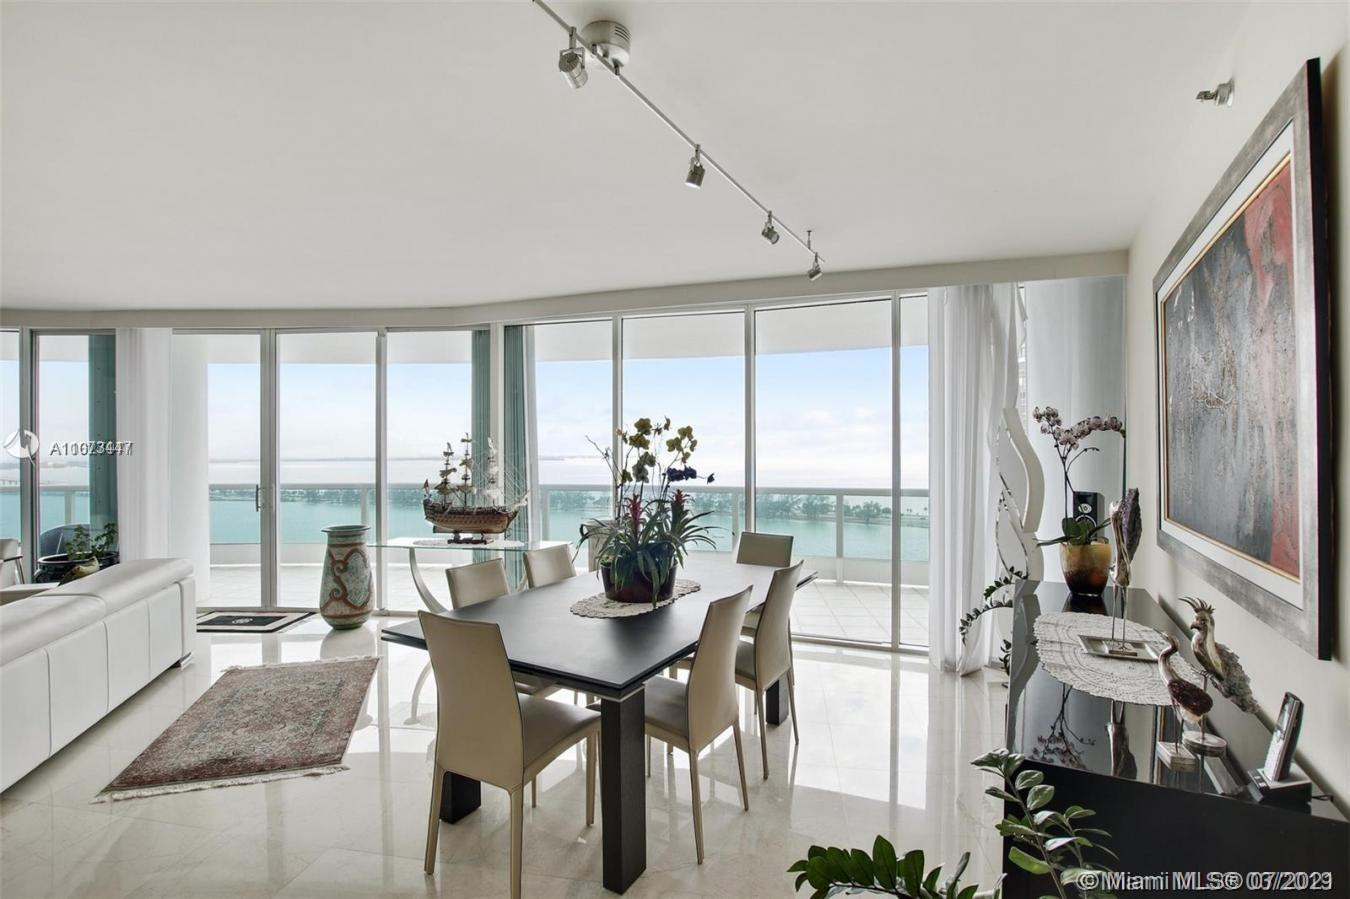 Enter through a private elevator to a spectacular 3 bedroom, 3 1/2 bath, 2,825 s/f home with hundreds of thousands of dollars of sophisticated improvements. Offering direct panoramic ocean and bay views. Enjoy the stunning sunset with Miami's everchanging Skyline from your wrap-around terrace of 880 s/f. Elegant interior, with custom design using the most beautiful Italian materials and craftsmanship, white marble floors, kitchen, bar, doors, bathroom, and his & her closets. The integrated kitchen features top-of-the-range appliances, with a large island for gatherings. Love its luxurious amenities with 24-hour security, gated entrance, tennis courts, 2 heated bayside pools, fitness center, spa, cafeteria, covered parking & valet. Price includes $10,000,000 in building improvements